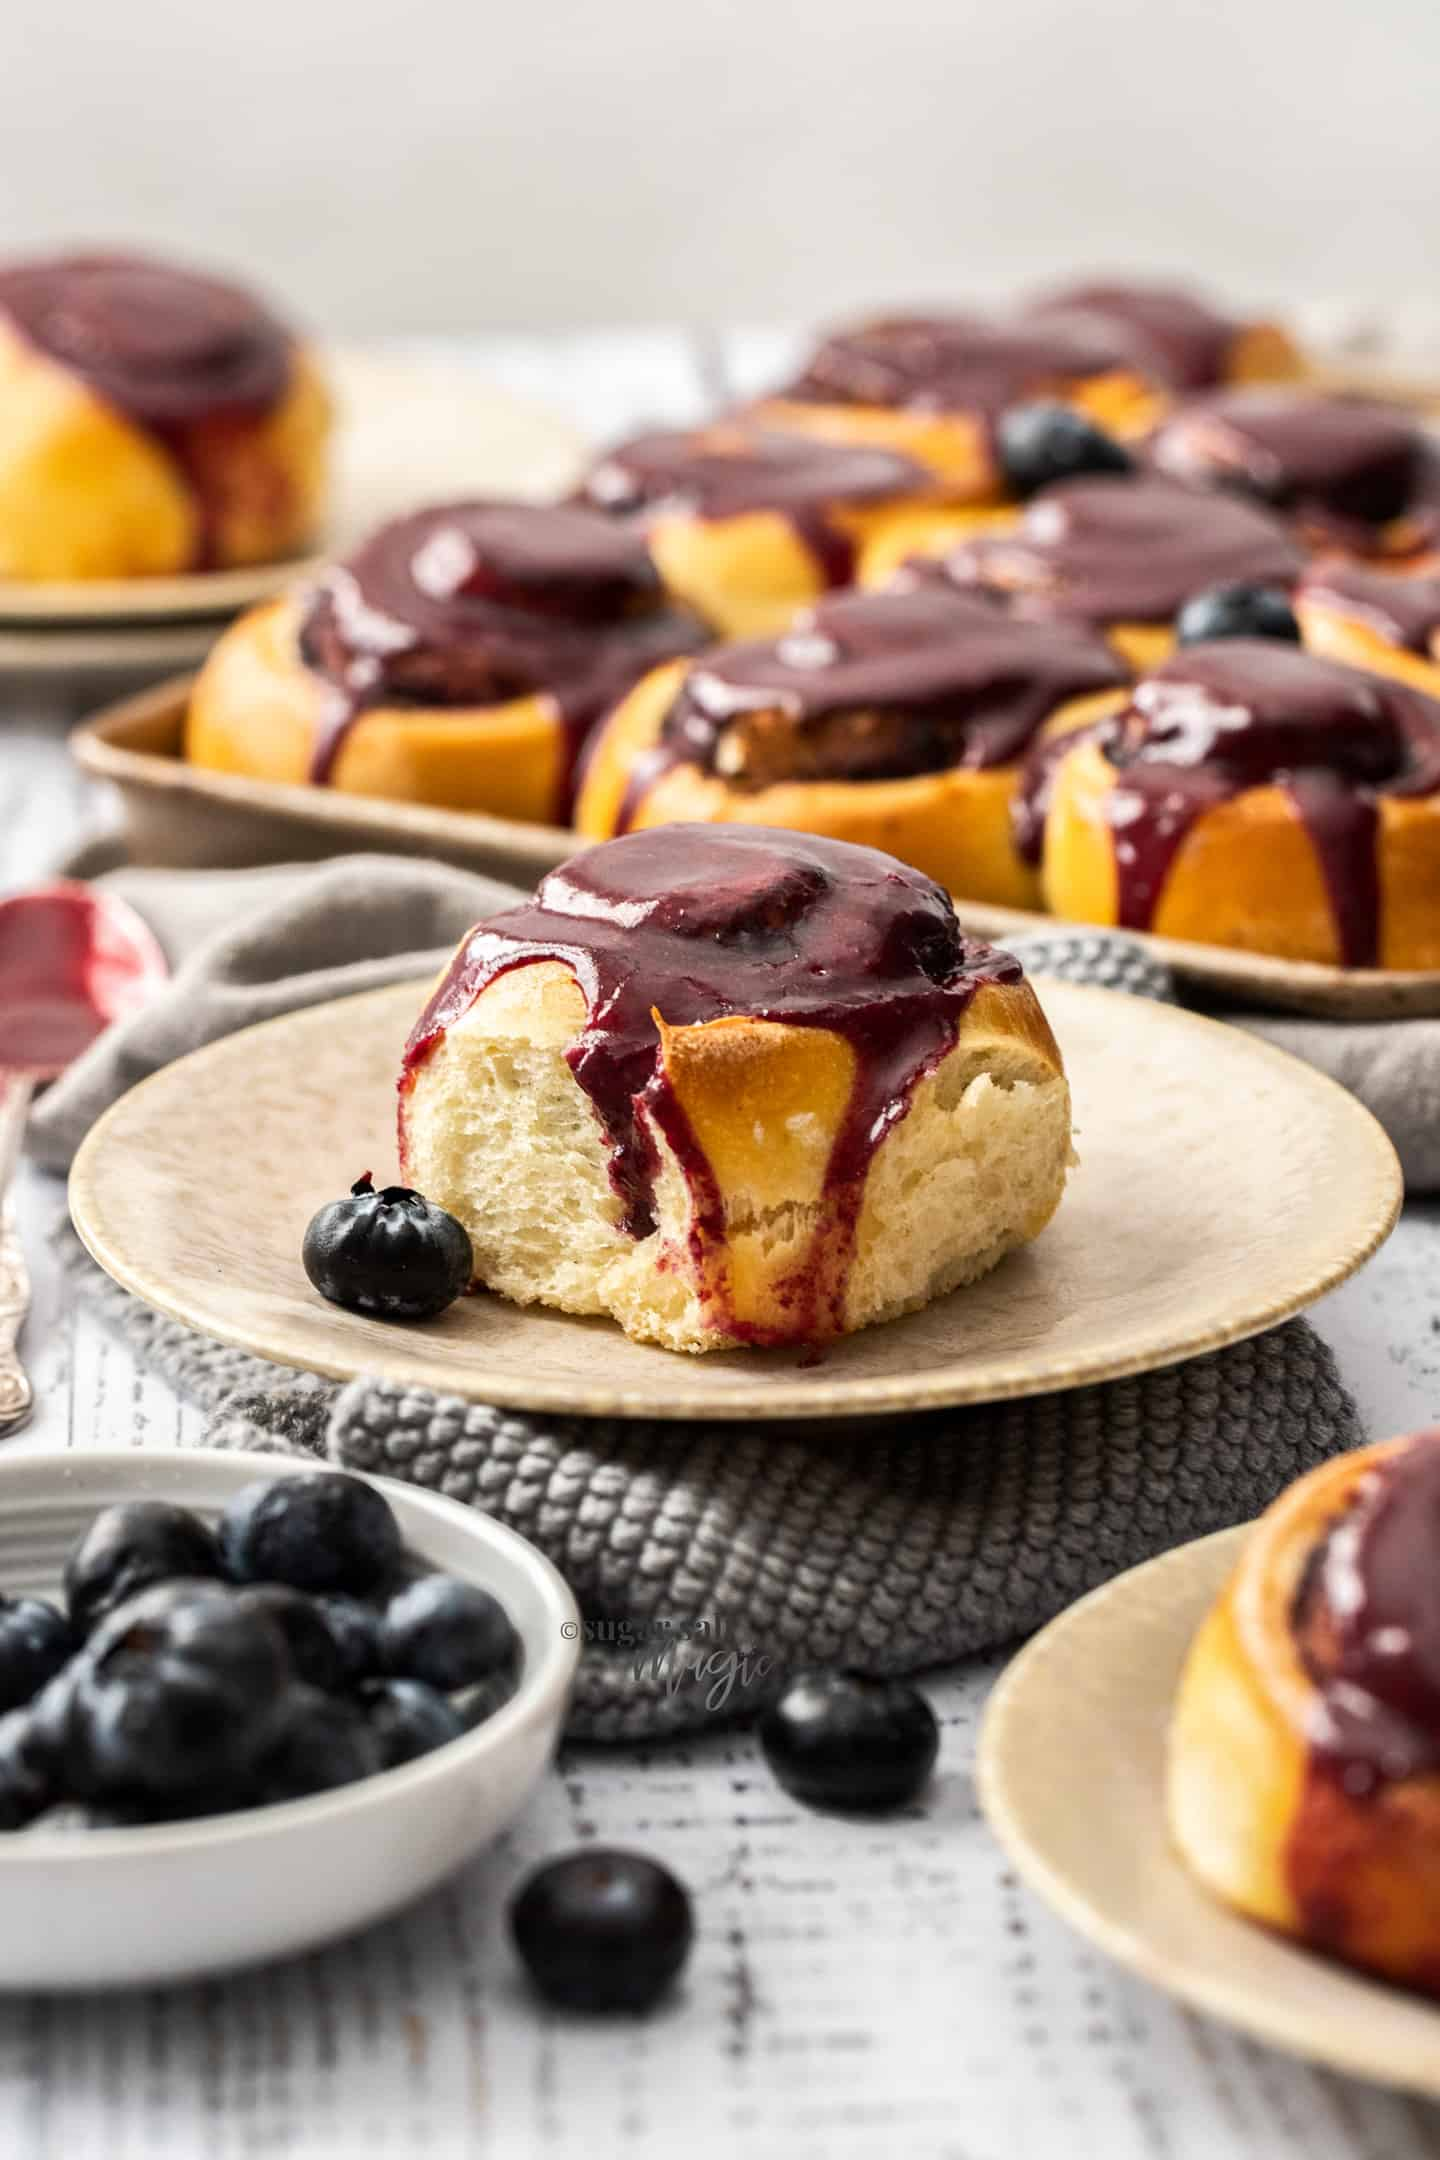 A cinnamon roll topped with blueberry glaze on a cream plate.